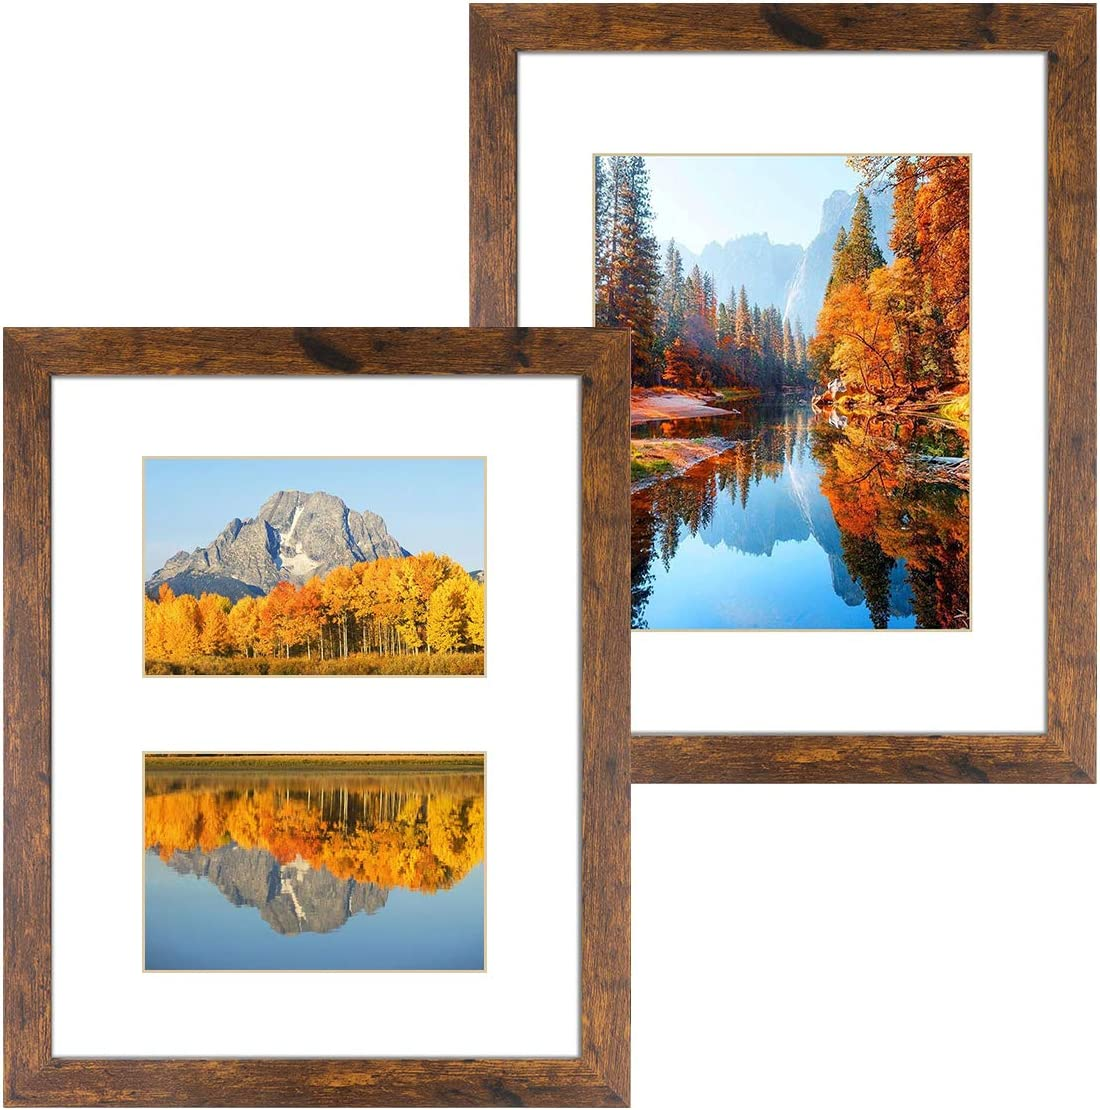 DBWIN 11x14 Picture Frame Rustic Brown Wood Pattern Photo Frame Real Glass Front 2 Pack,Each Frame with 2 Mats,Display 8x10 or Two 5x7 Photos with Mat Wall Decor(LY01-11X14-BR2)